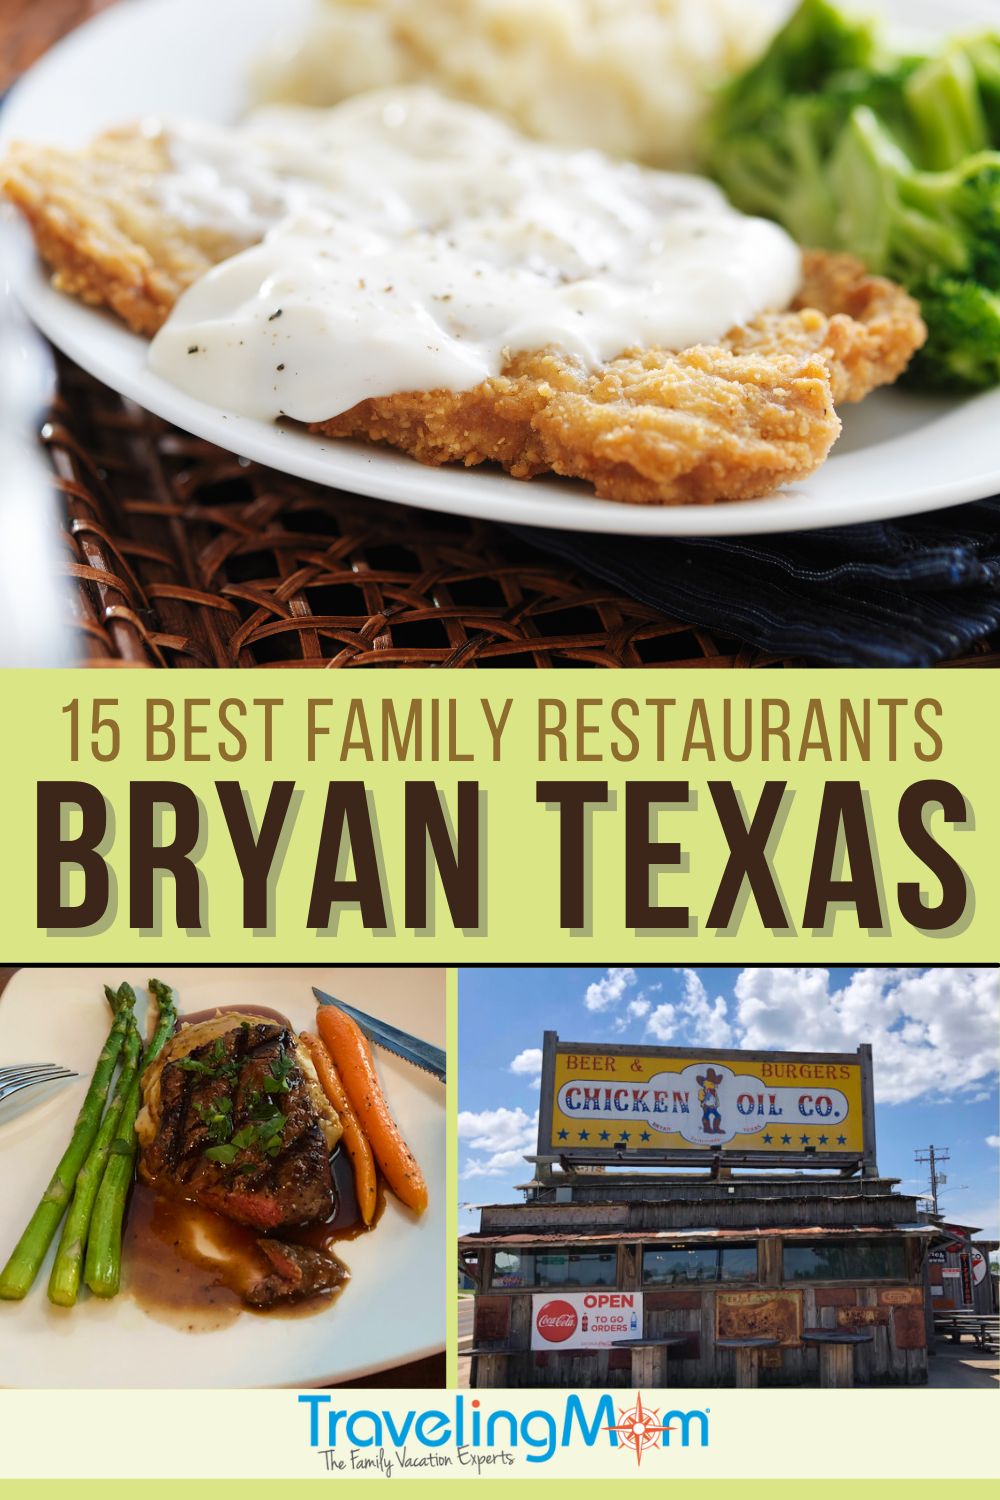 images of restaurant dishes with text reading 15 best family restaurants in bryan texas